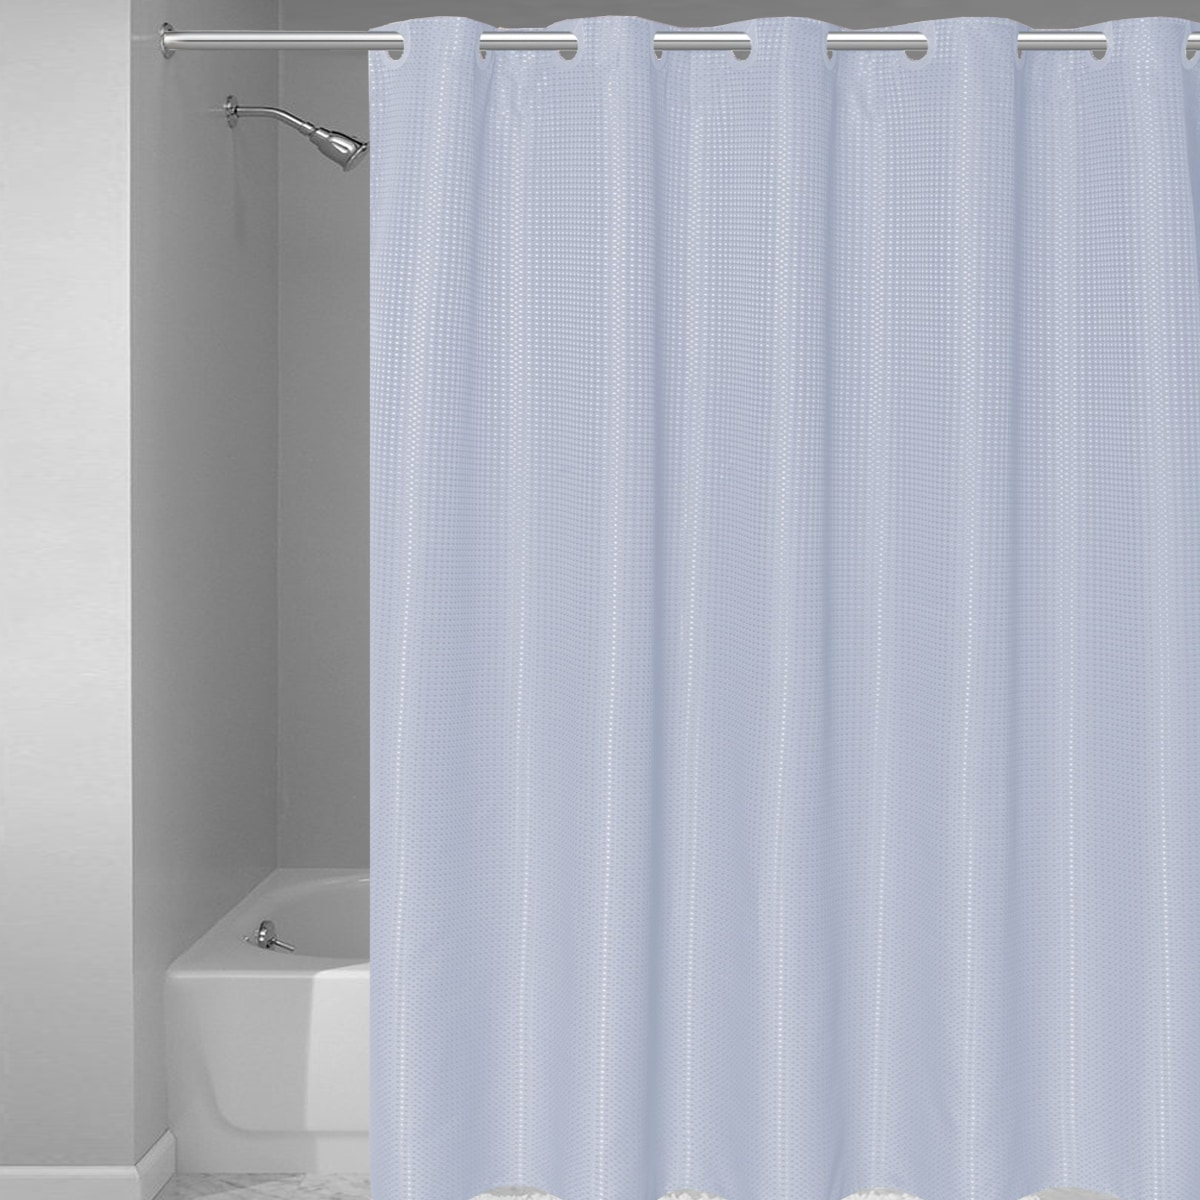 EZ-ON Waffle Weave Fabric Shower Curtain with Snap Off Liner Assorted Colors (70\